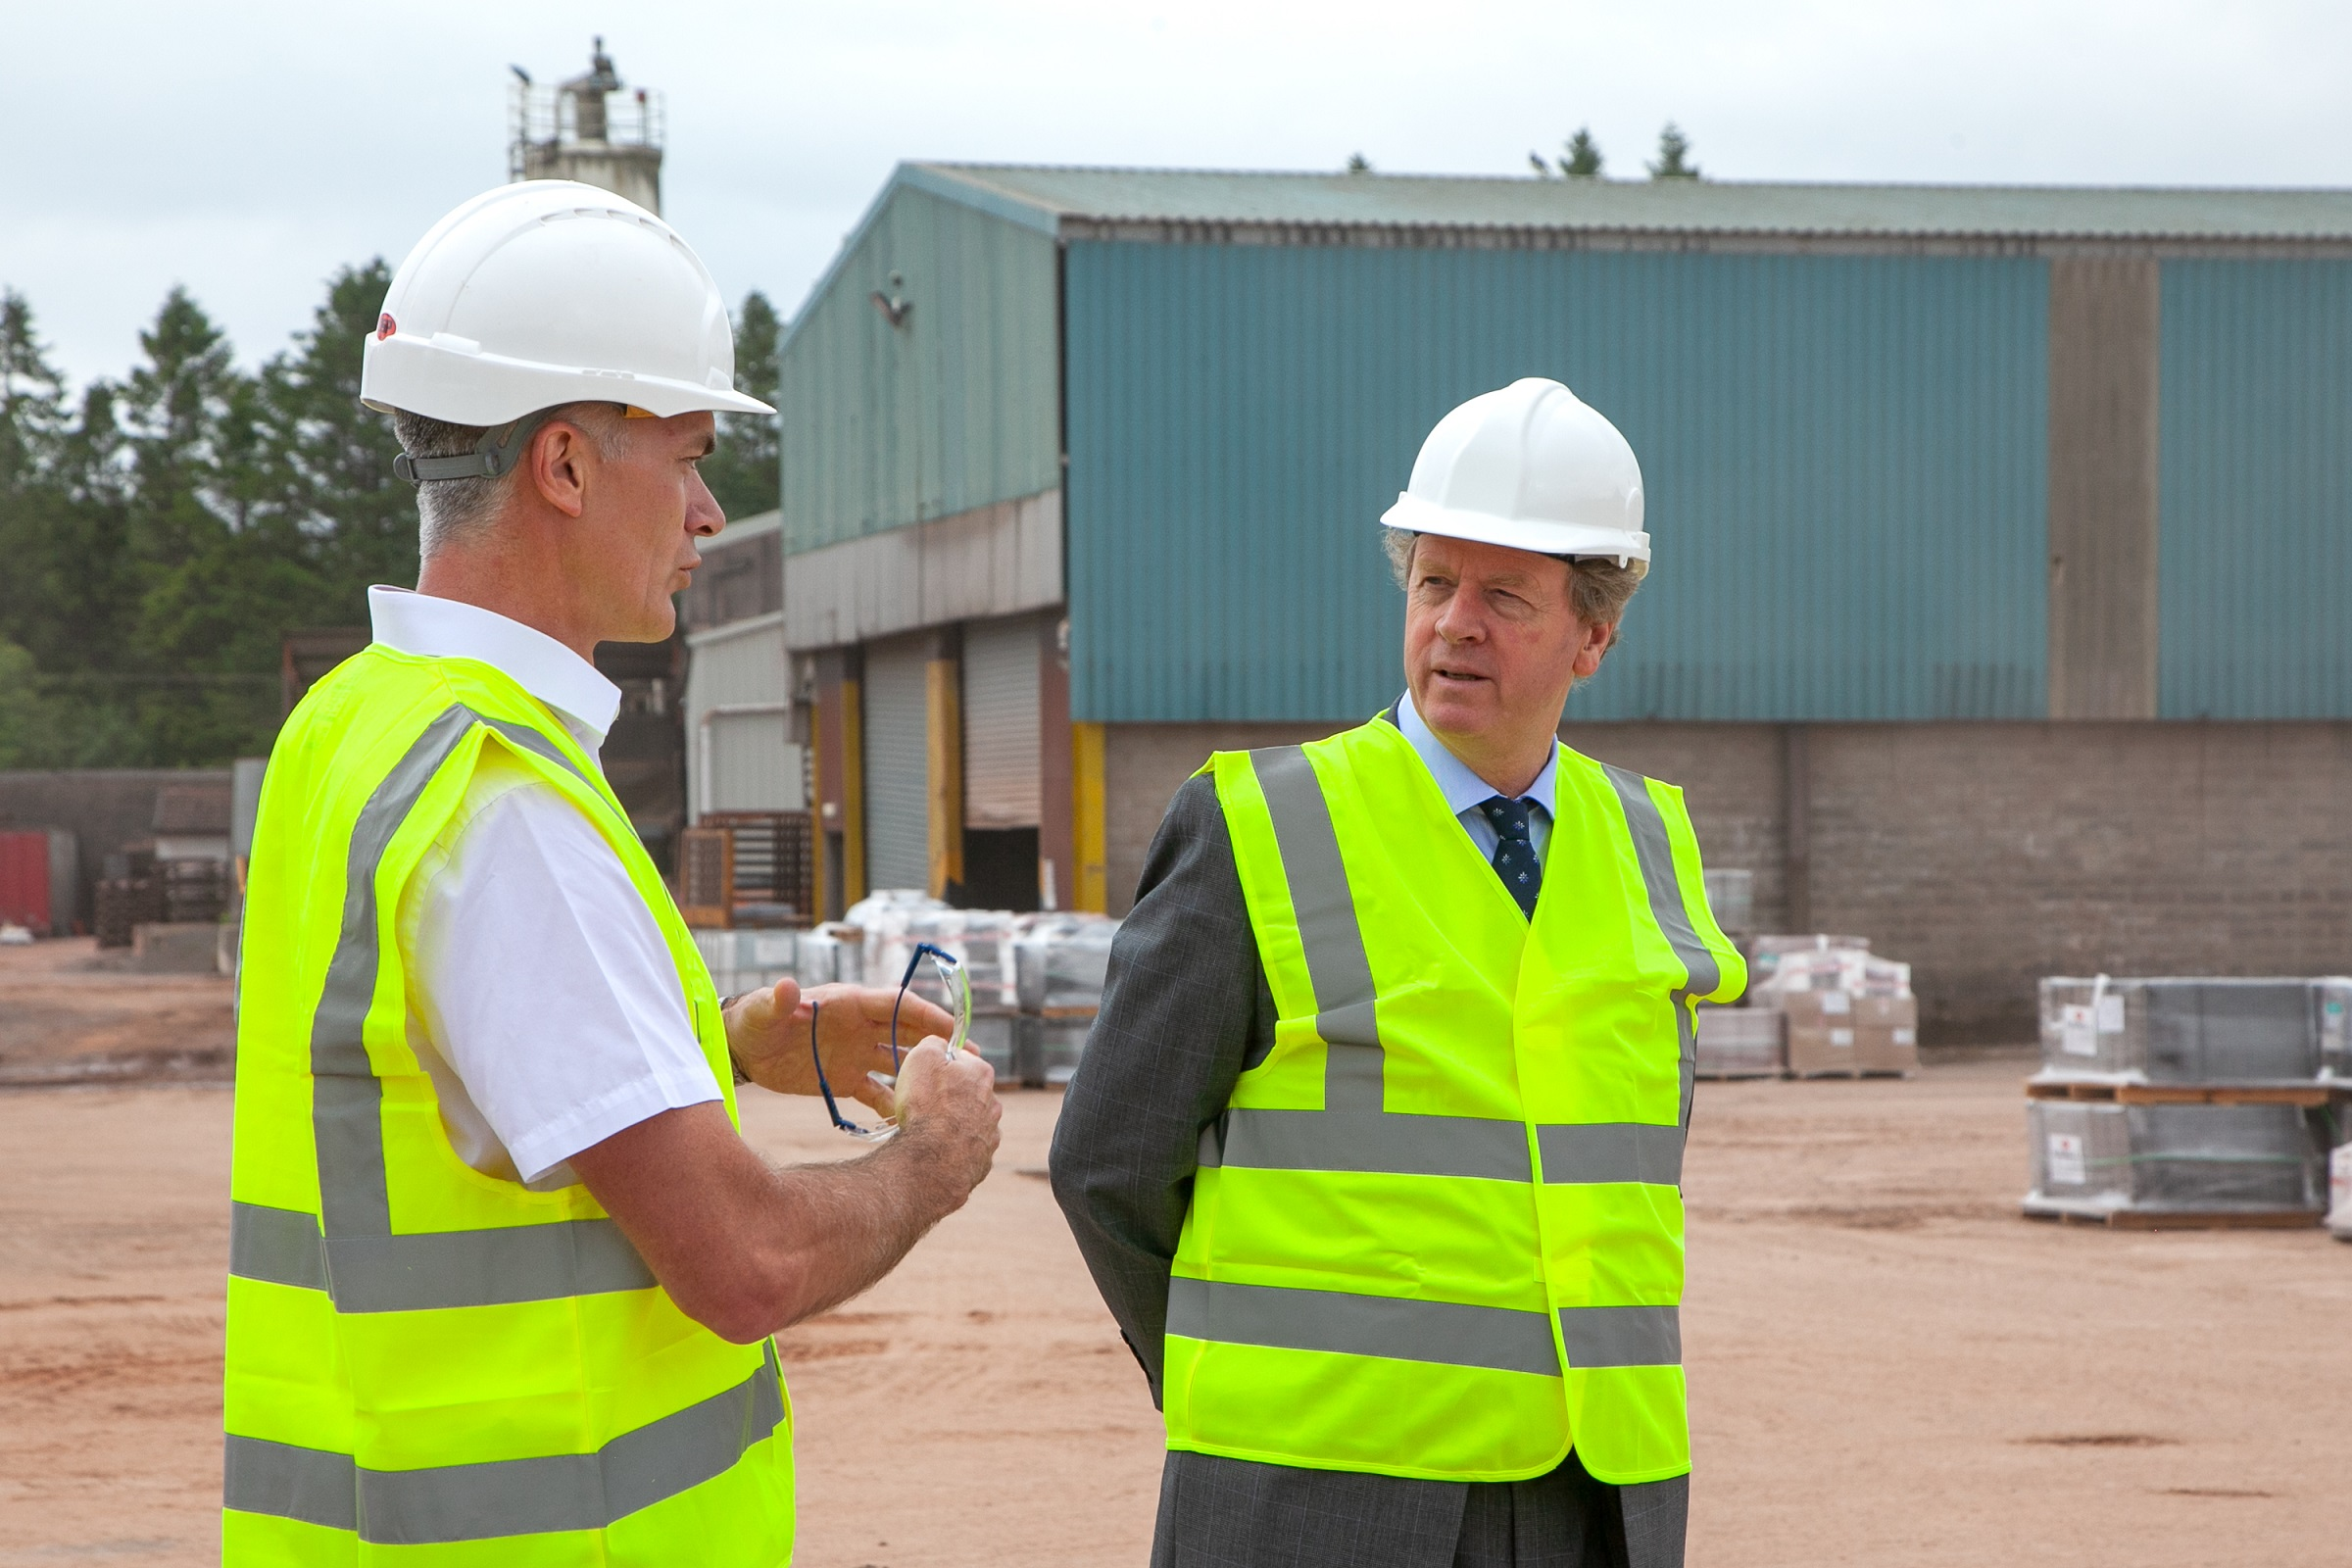 From L to R Bruce Laidlaw, Production Director at RRT and Scottish Sec Alister Jack